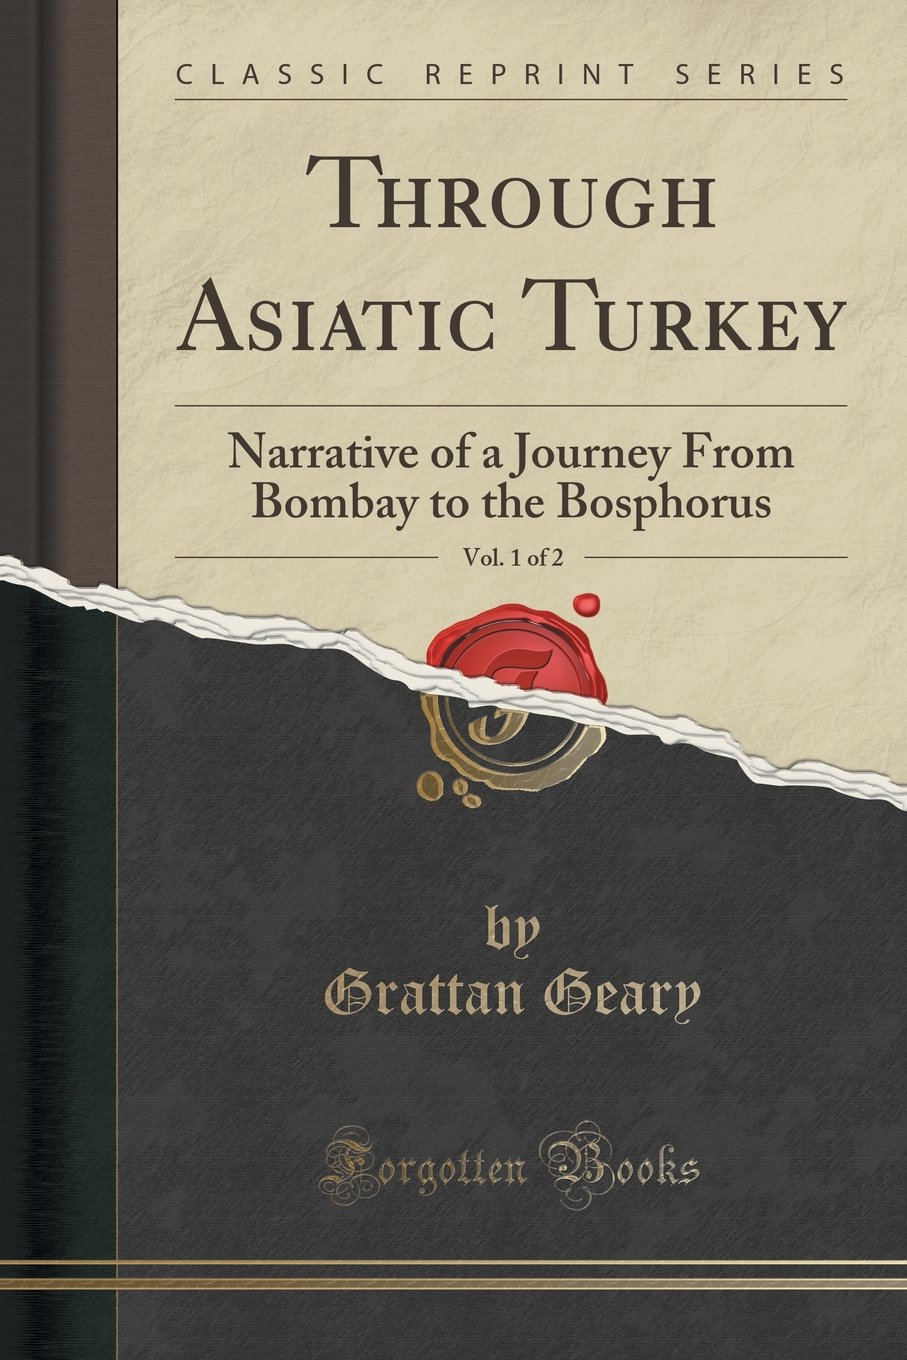 Through Asiatic Turkey, Vol. 1 of 2: Narrative of a Journey From Bombay to the Bosphorus (Classic Reprint)